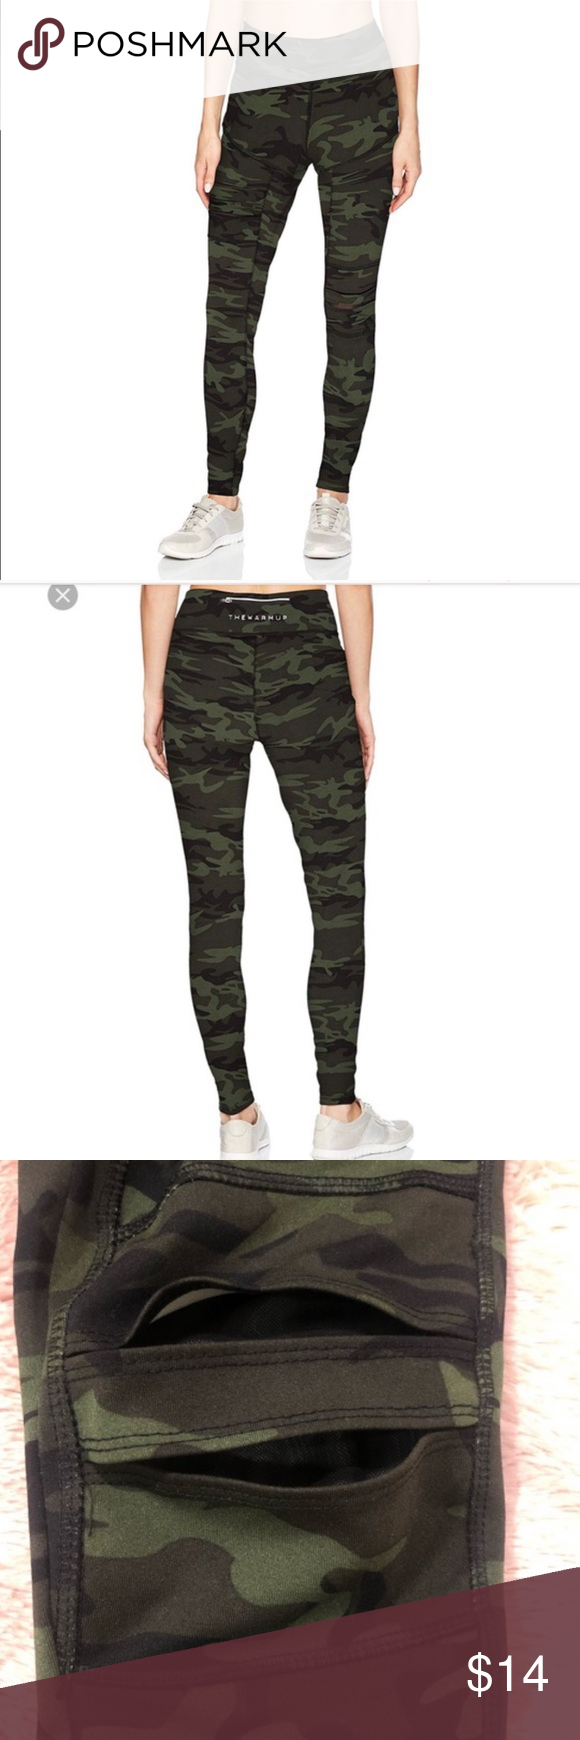 a9b1e76b8fa23 Jessica Simpson Workout Leggings Used, Camo, Jessica Simpson the warm up.  Zip back waist pocket. Slits in left knee and right upper thigh with sheer  black ...